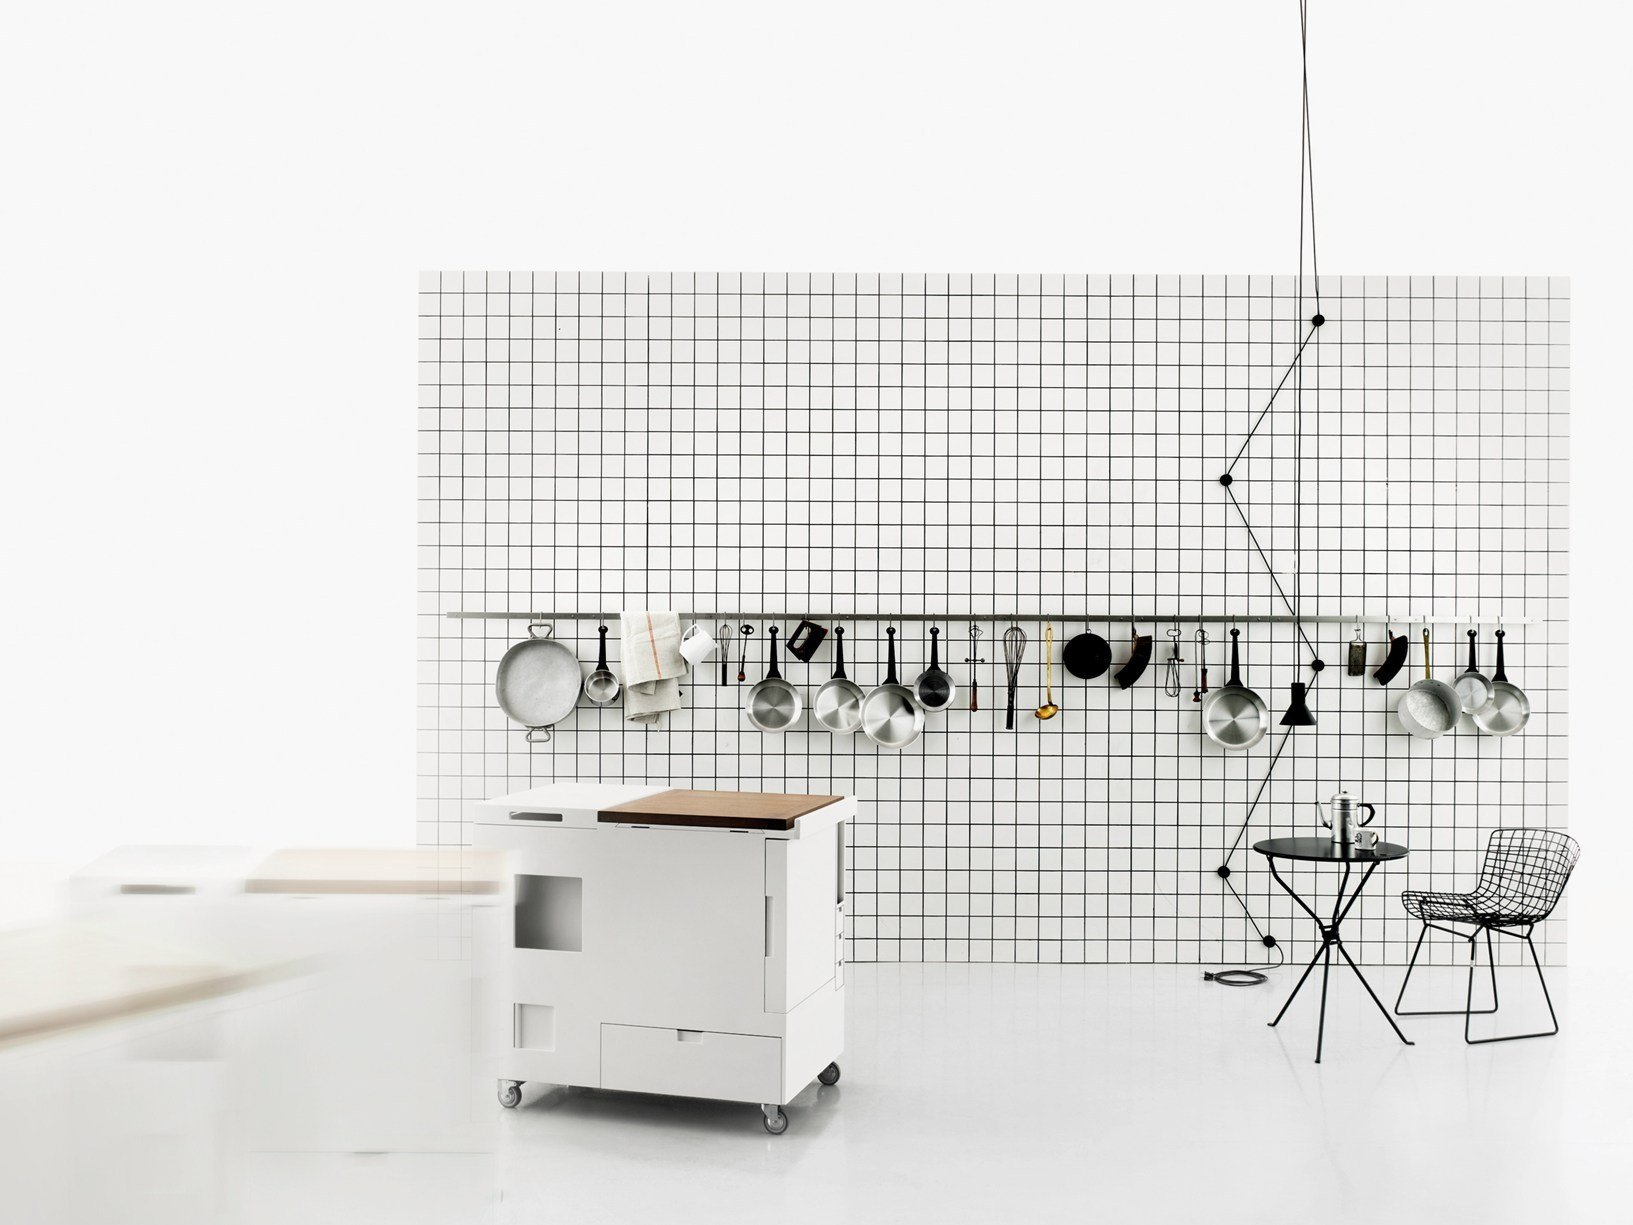 Minikitchen di joe colombo al 39 triennale design museum 39 - Le bon coin 69 ameublement ...